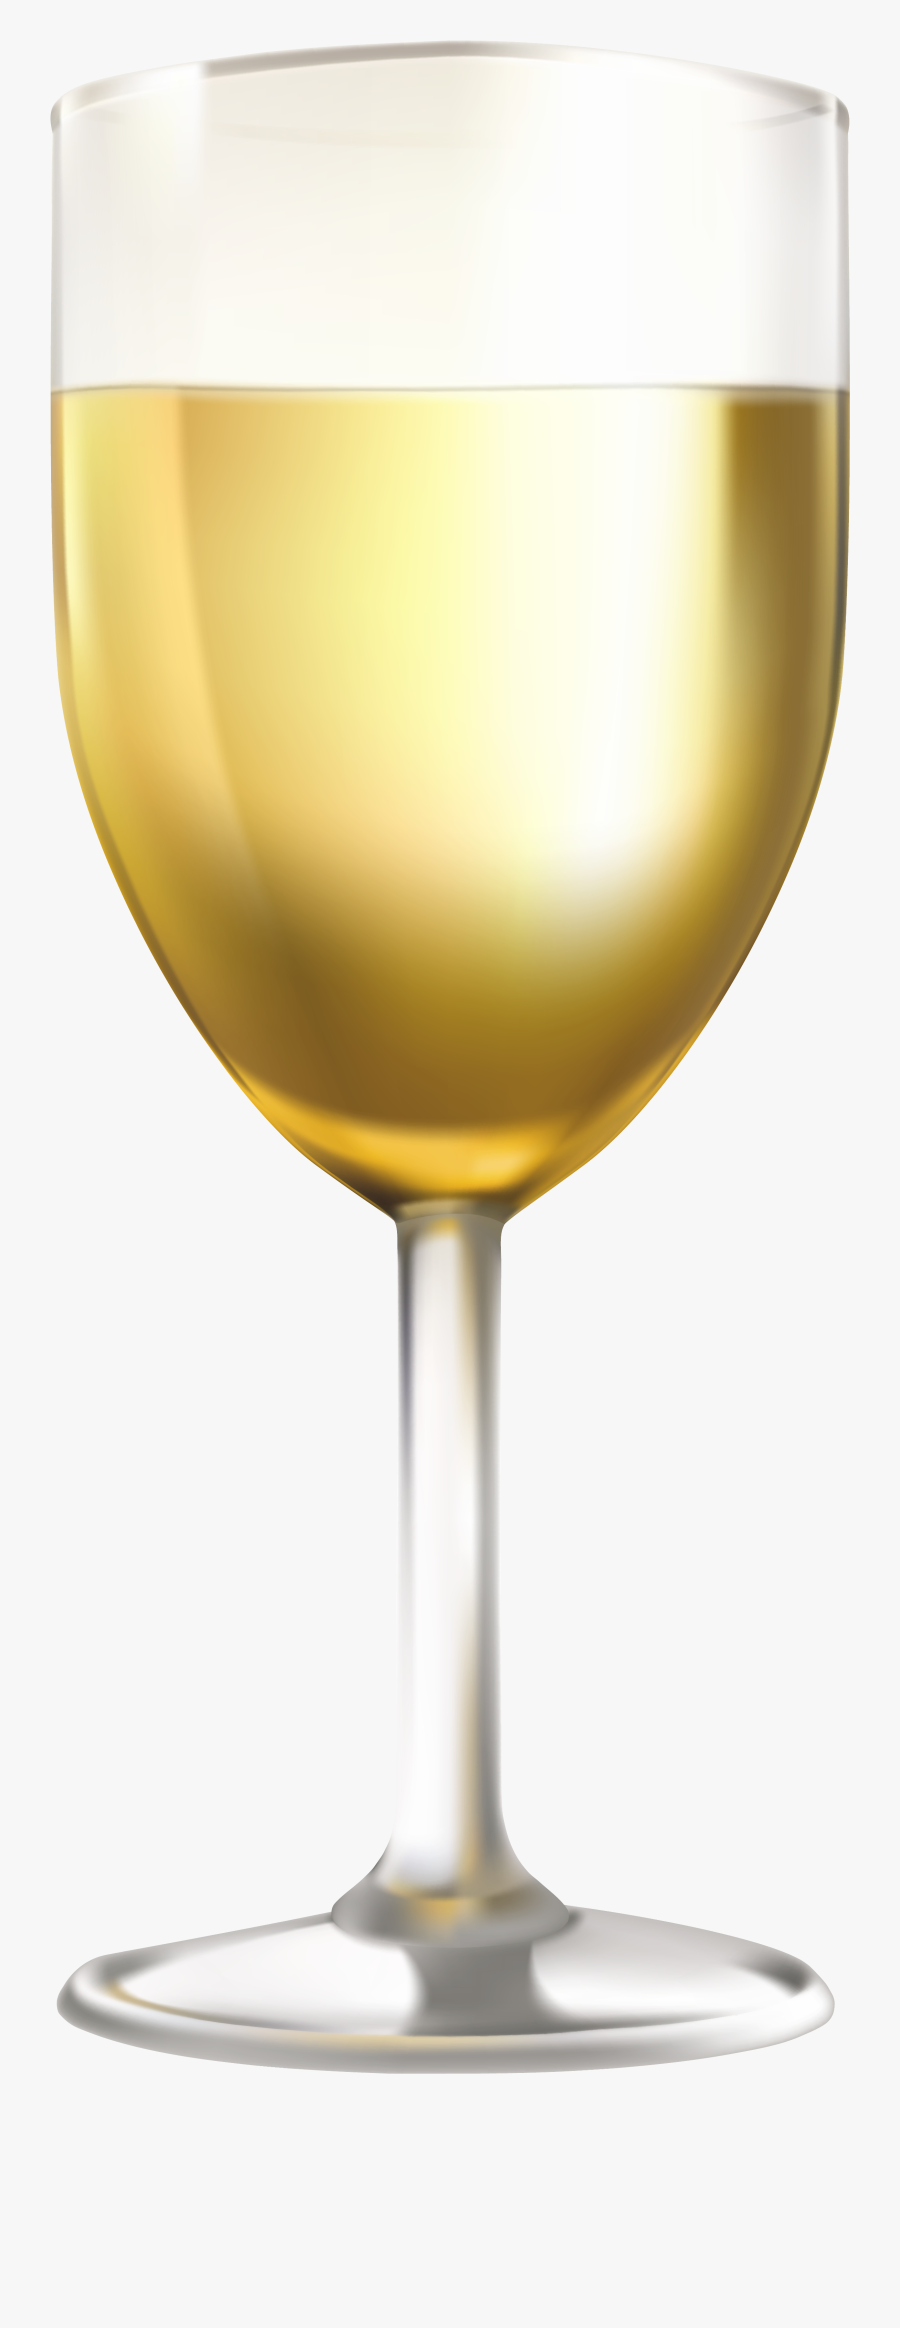 White Wine Glass Png, Transparent Clipart